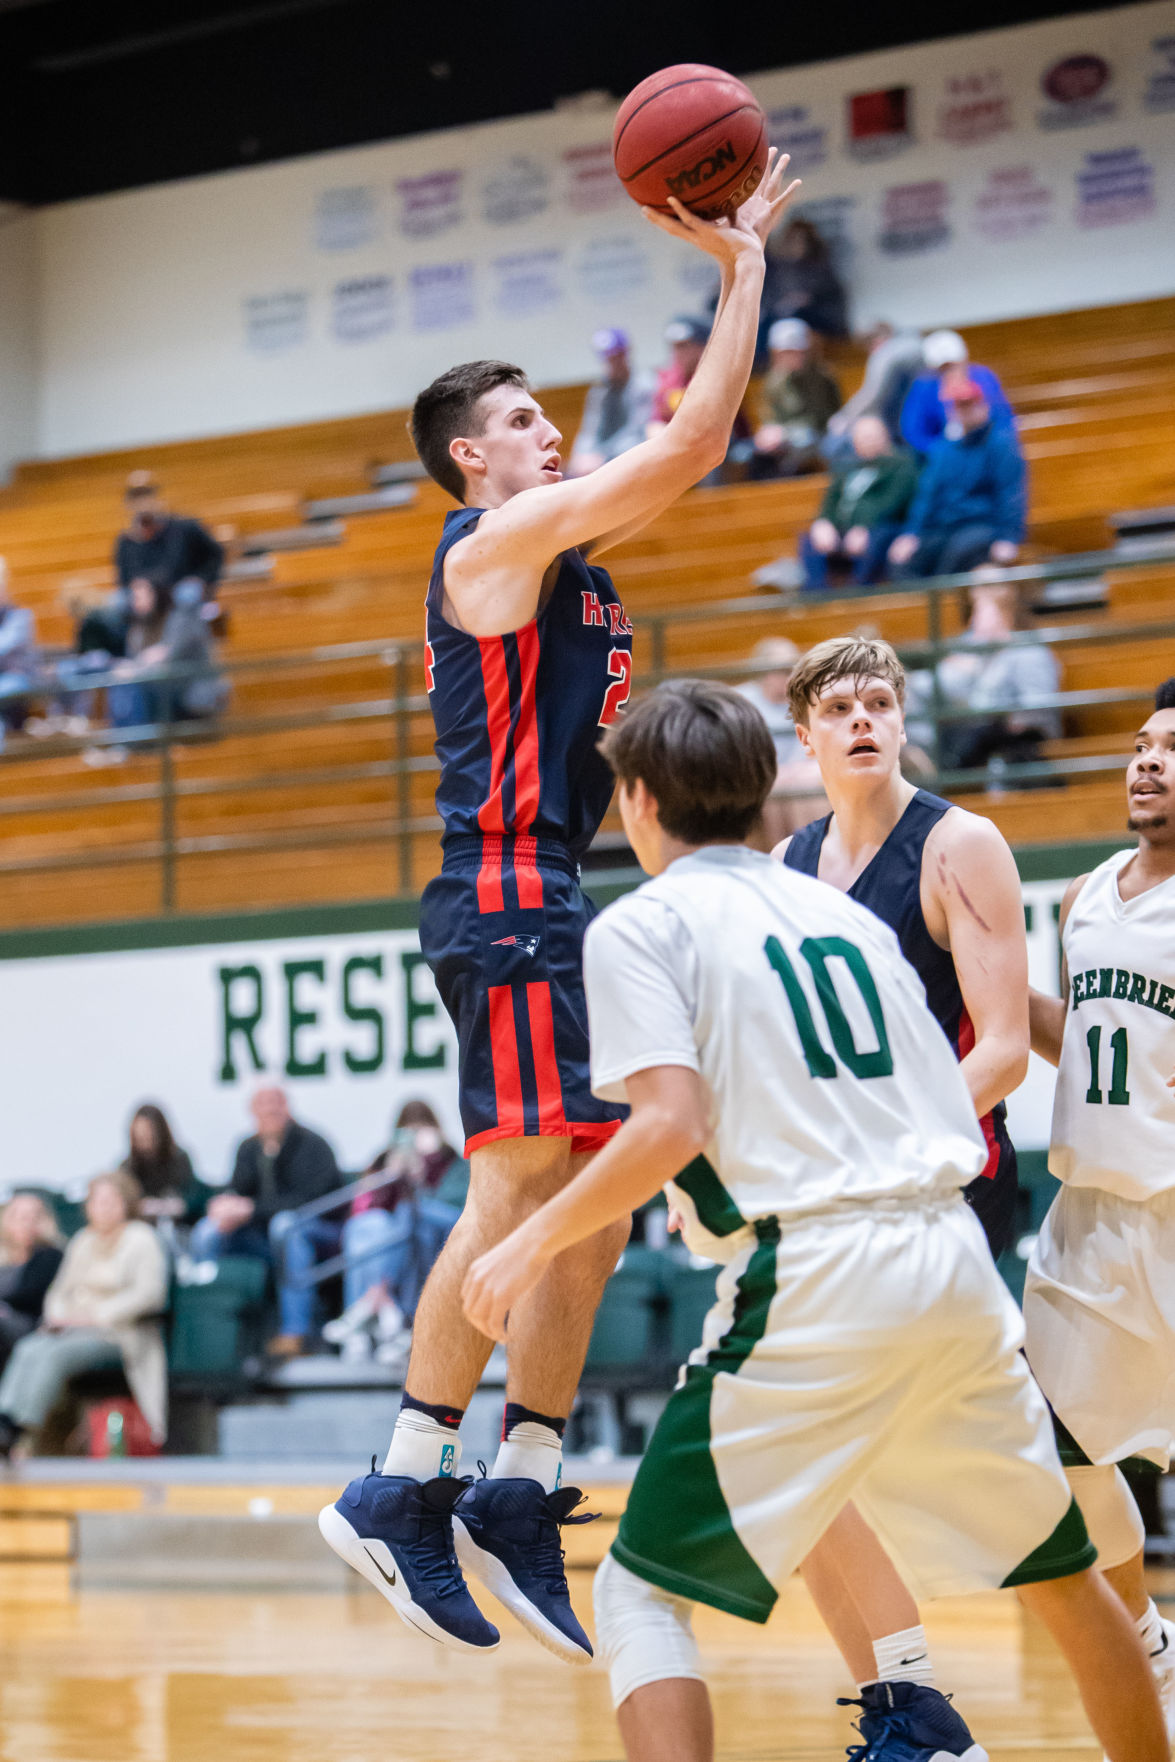 WH Heritage's Noah Owlsely shoots a jumper over the Greenbrier defense.JPG